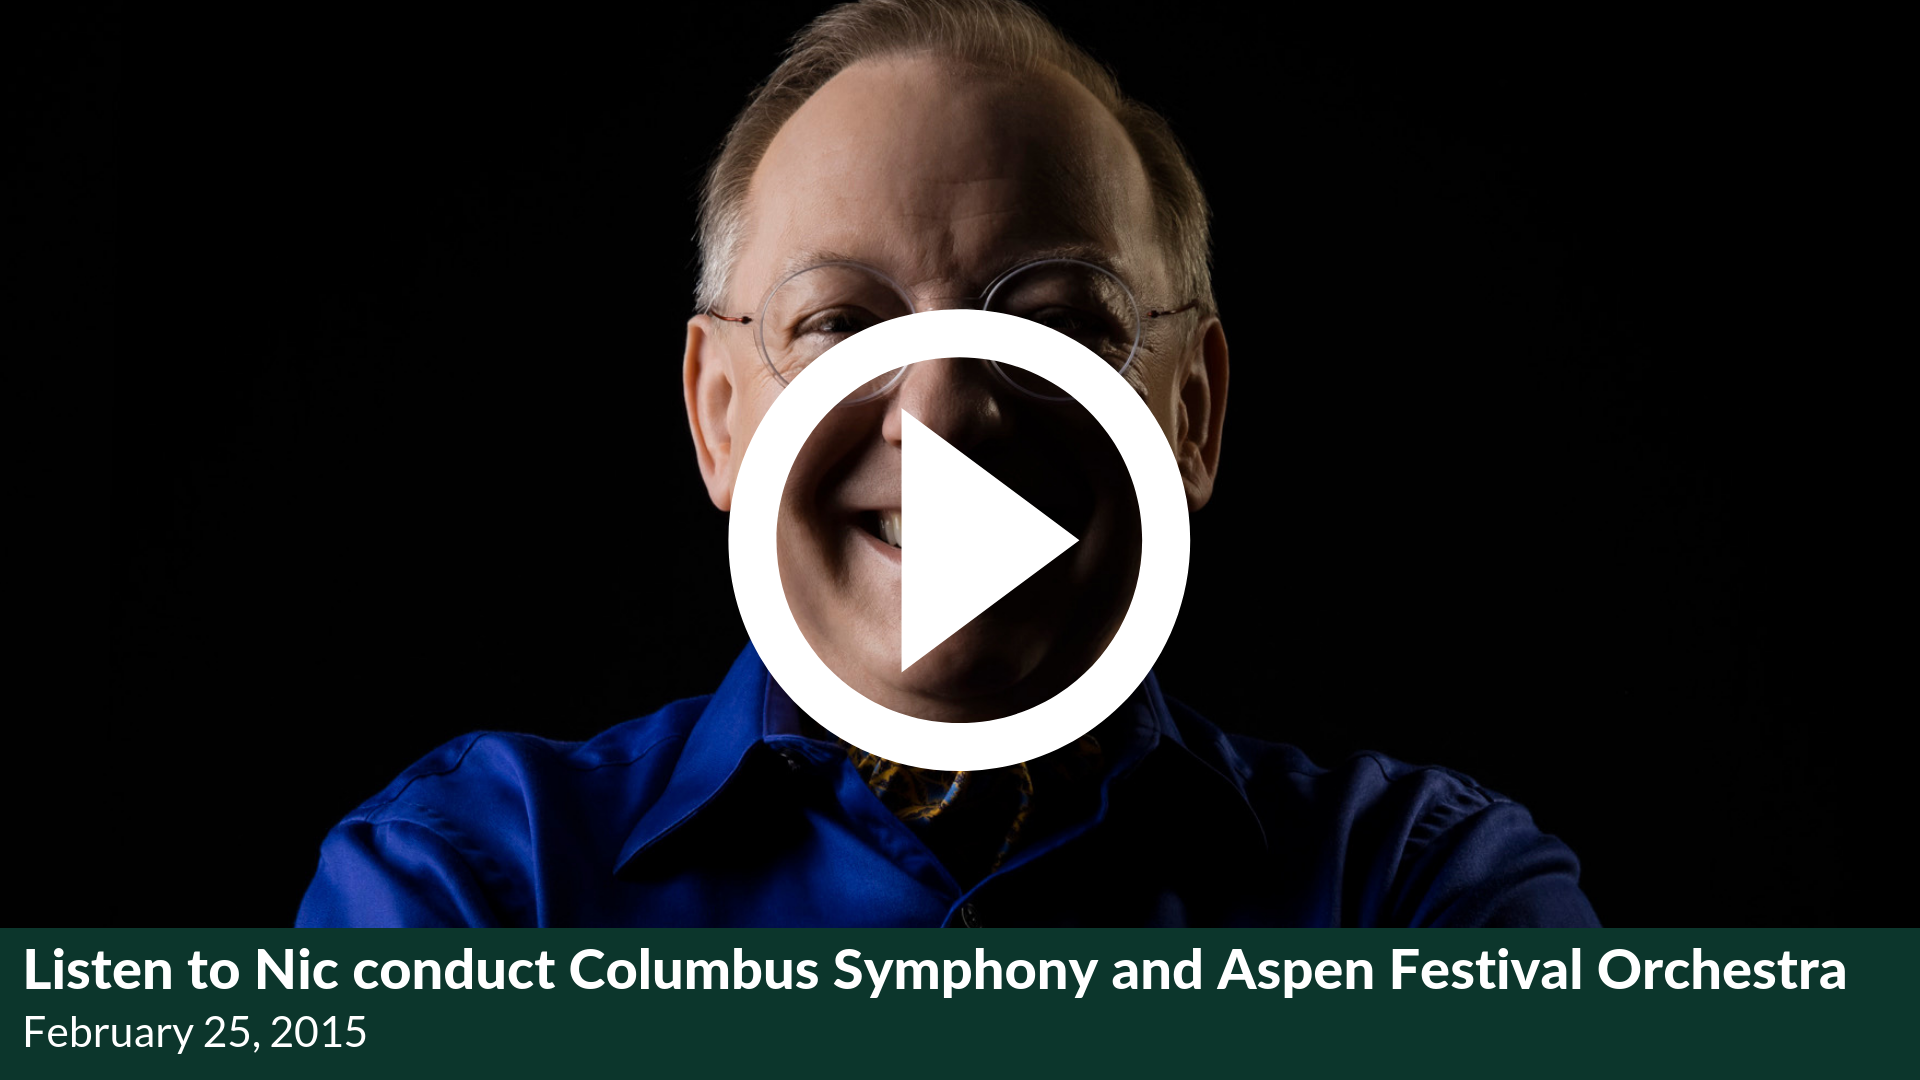 Listen to Nic conduct Columbus Symphony and Aspen Festival Orchestra